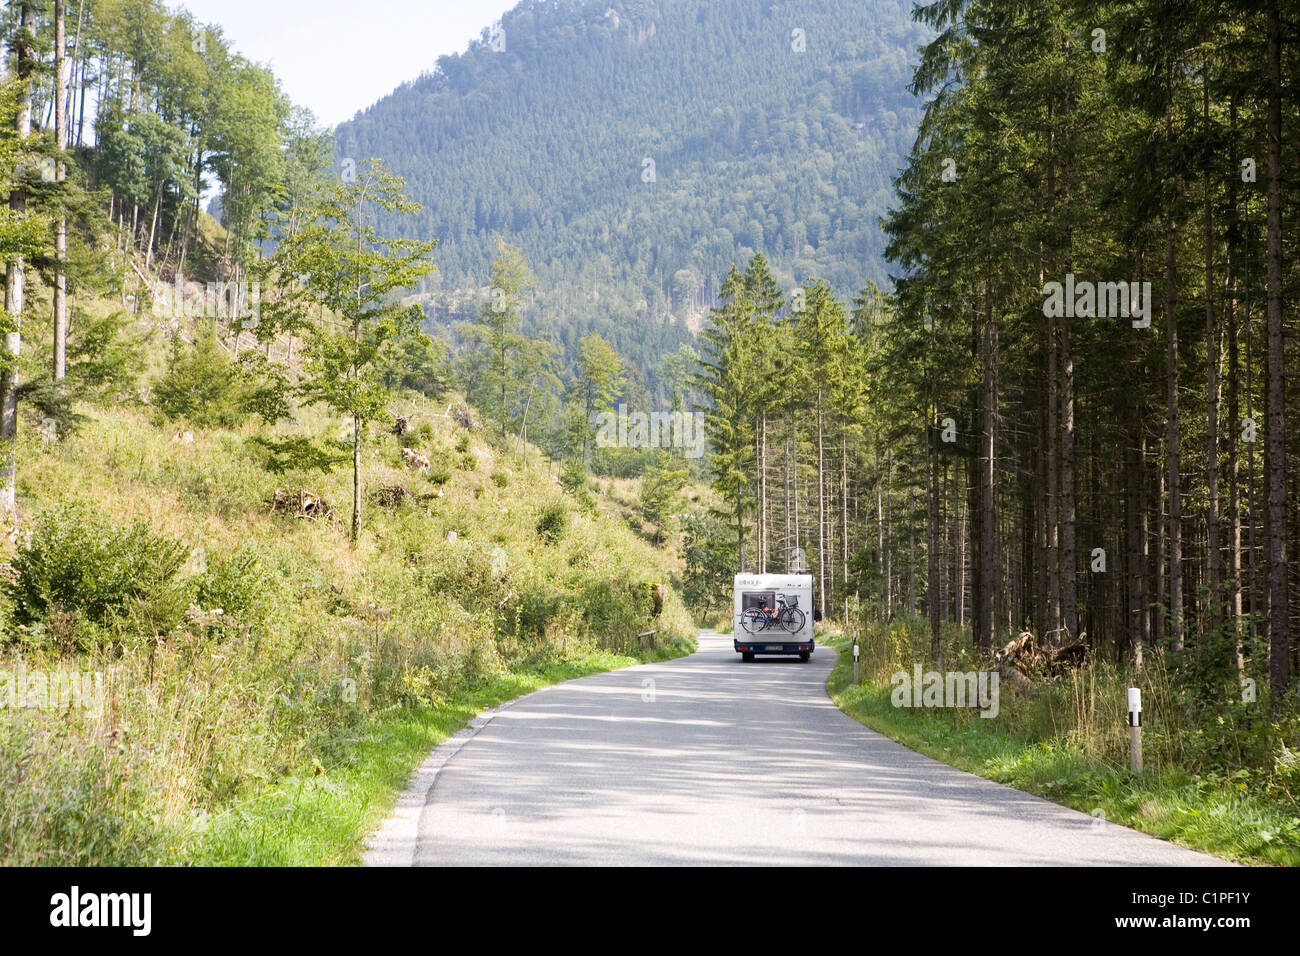 Germany, Bavaria, Bayrischzell, motorhome on road - Stock Image